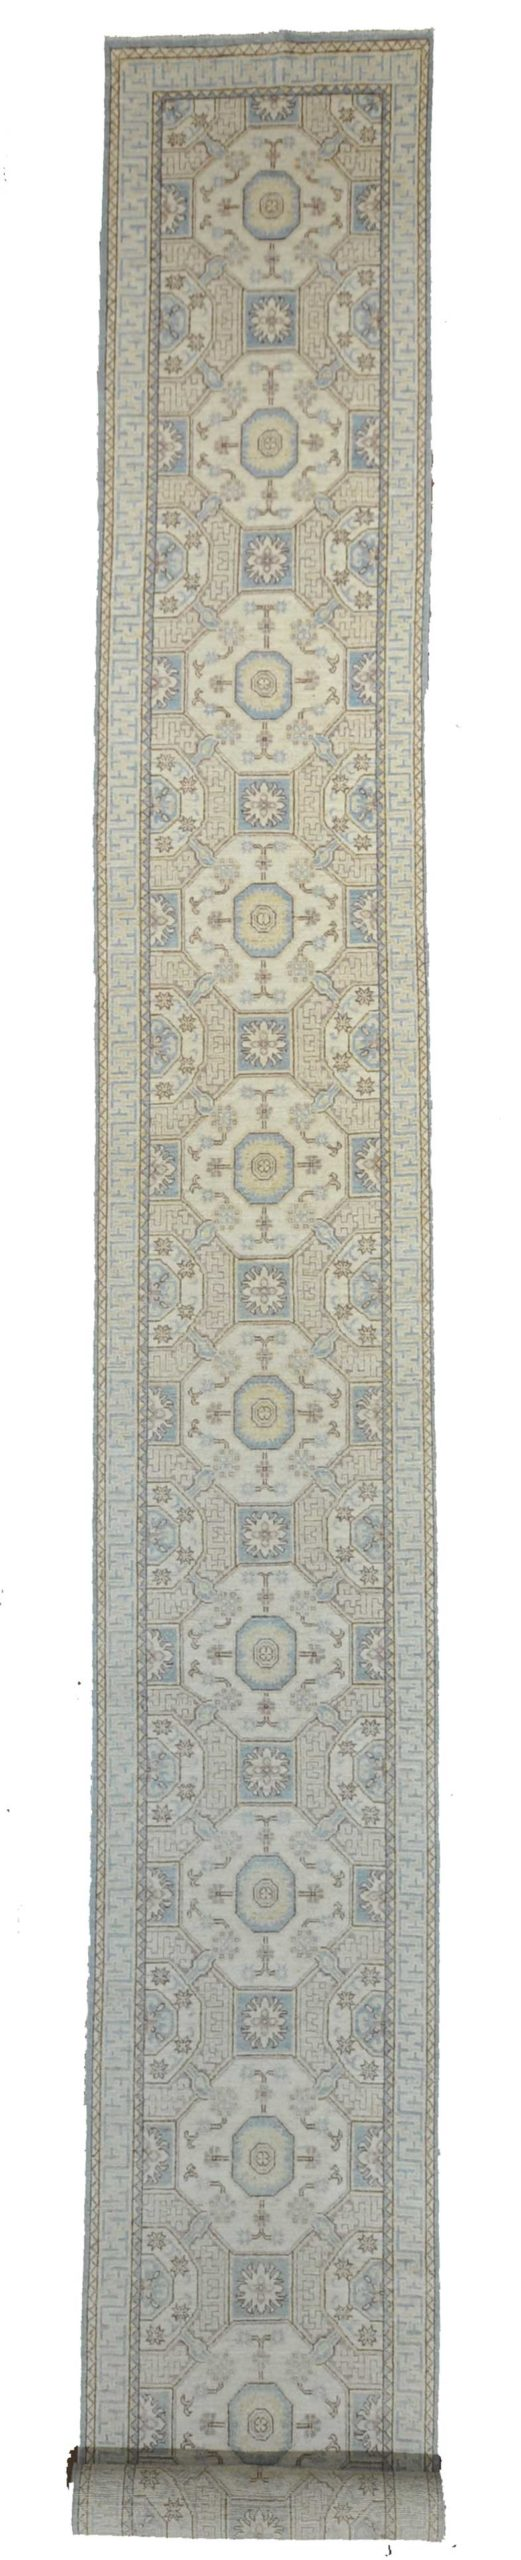 Ziegler & Co Oushak rugs and more oriental carpet -